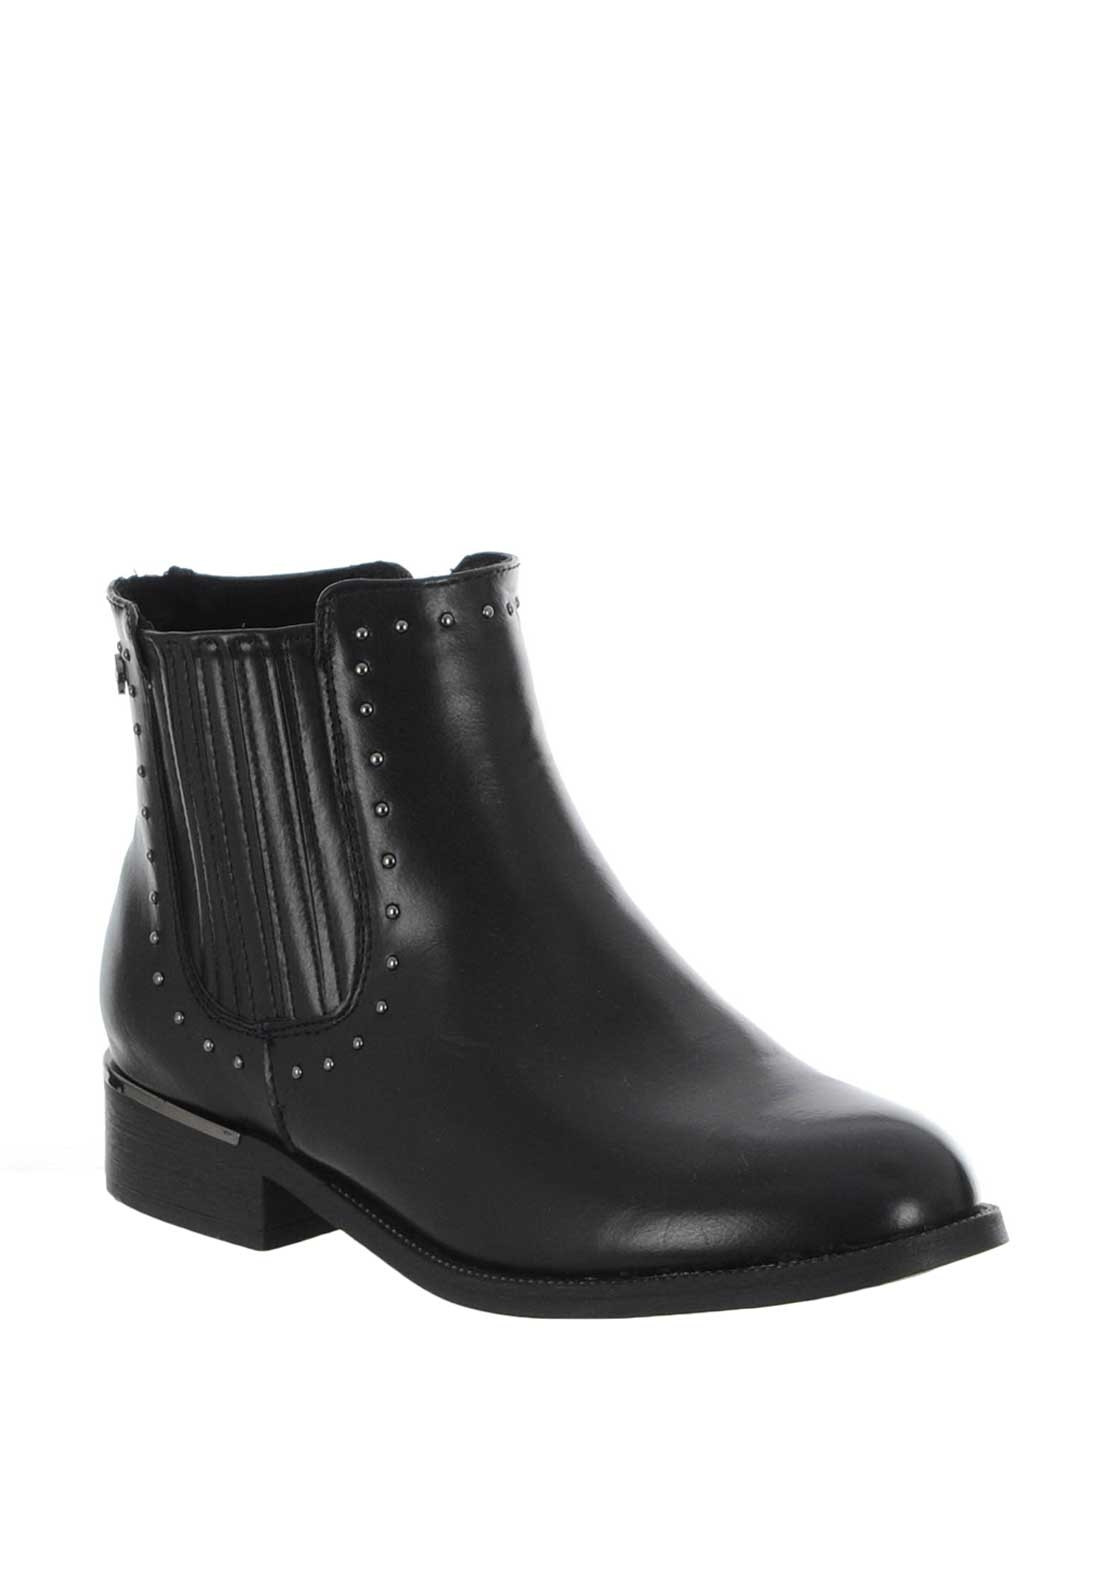 newest professional luxuriant in design Xti Womens Stud Trim Chelsea Boots, Black